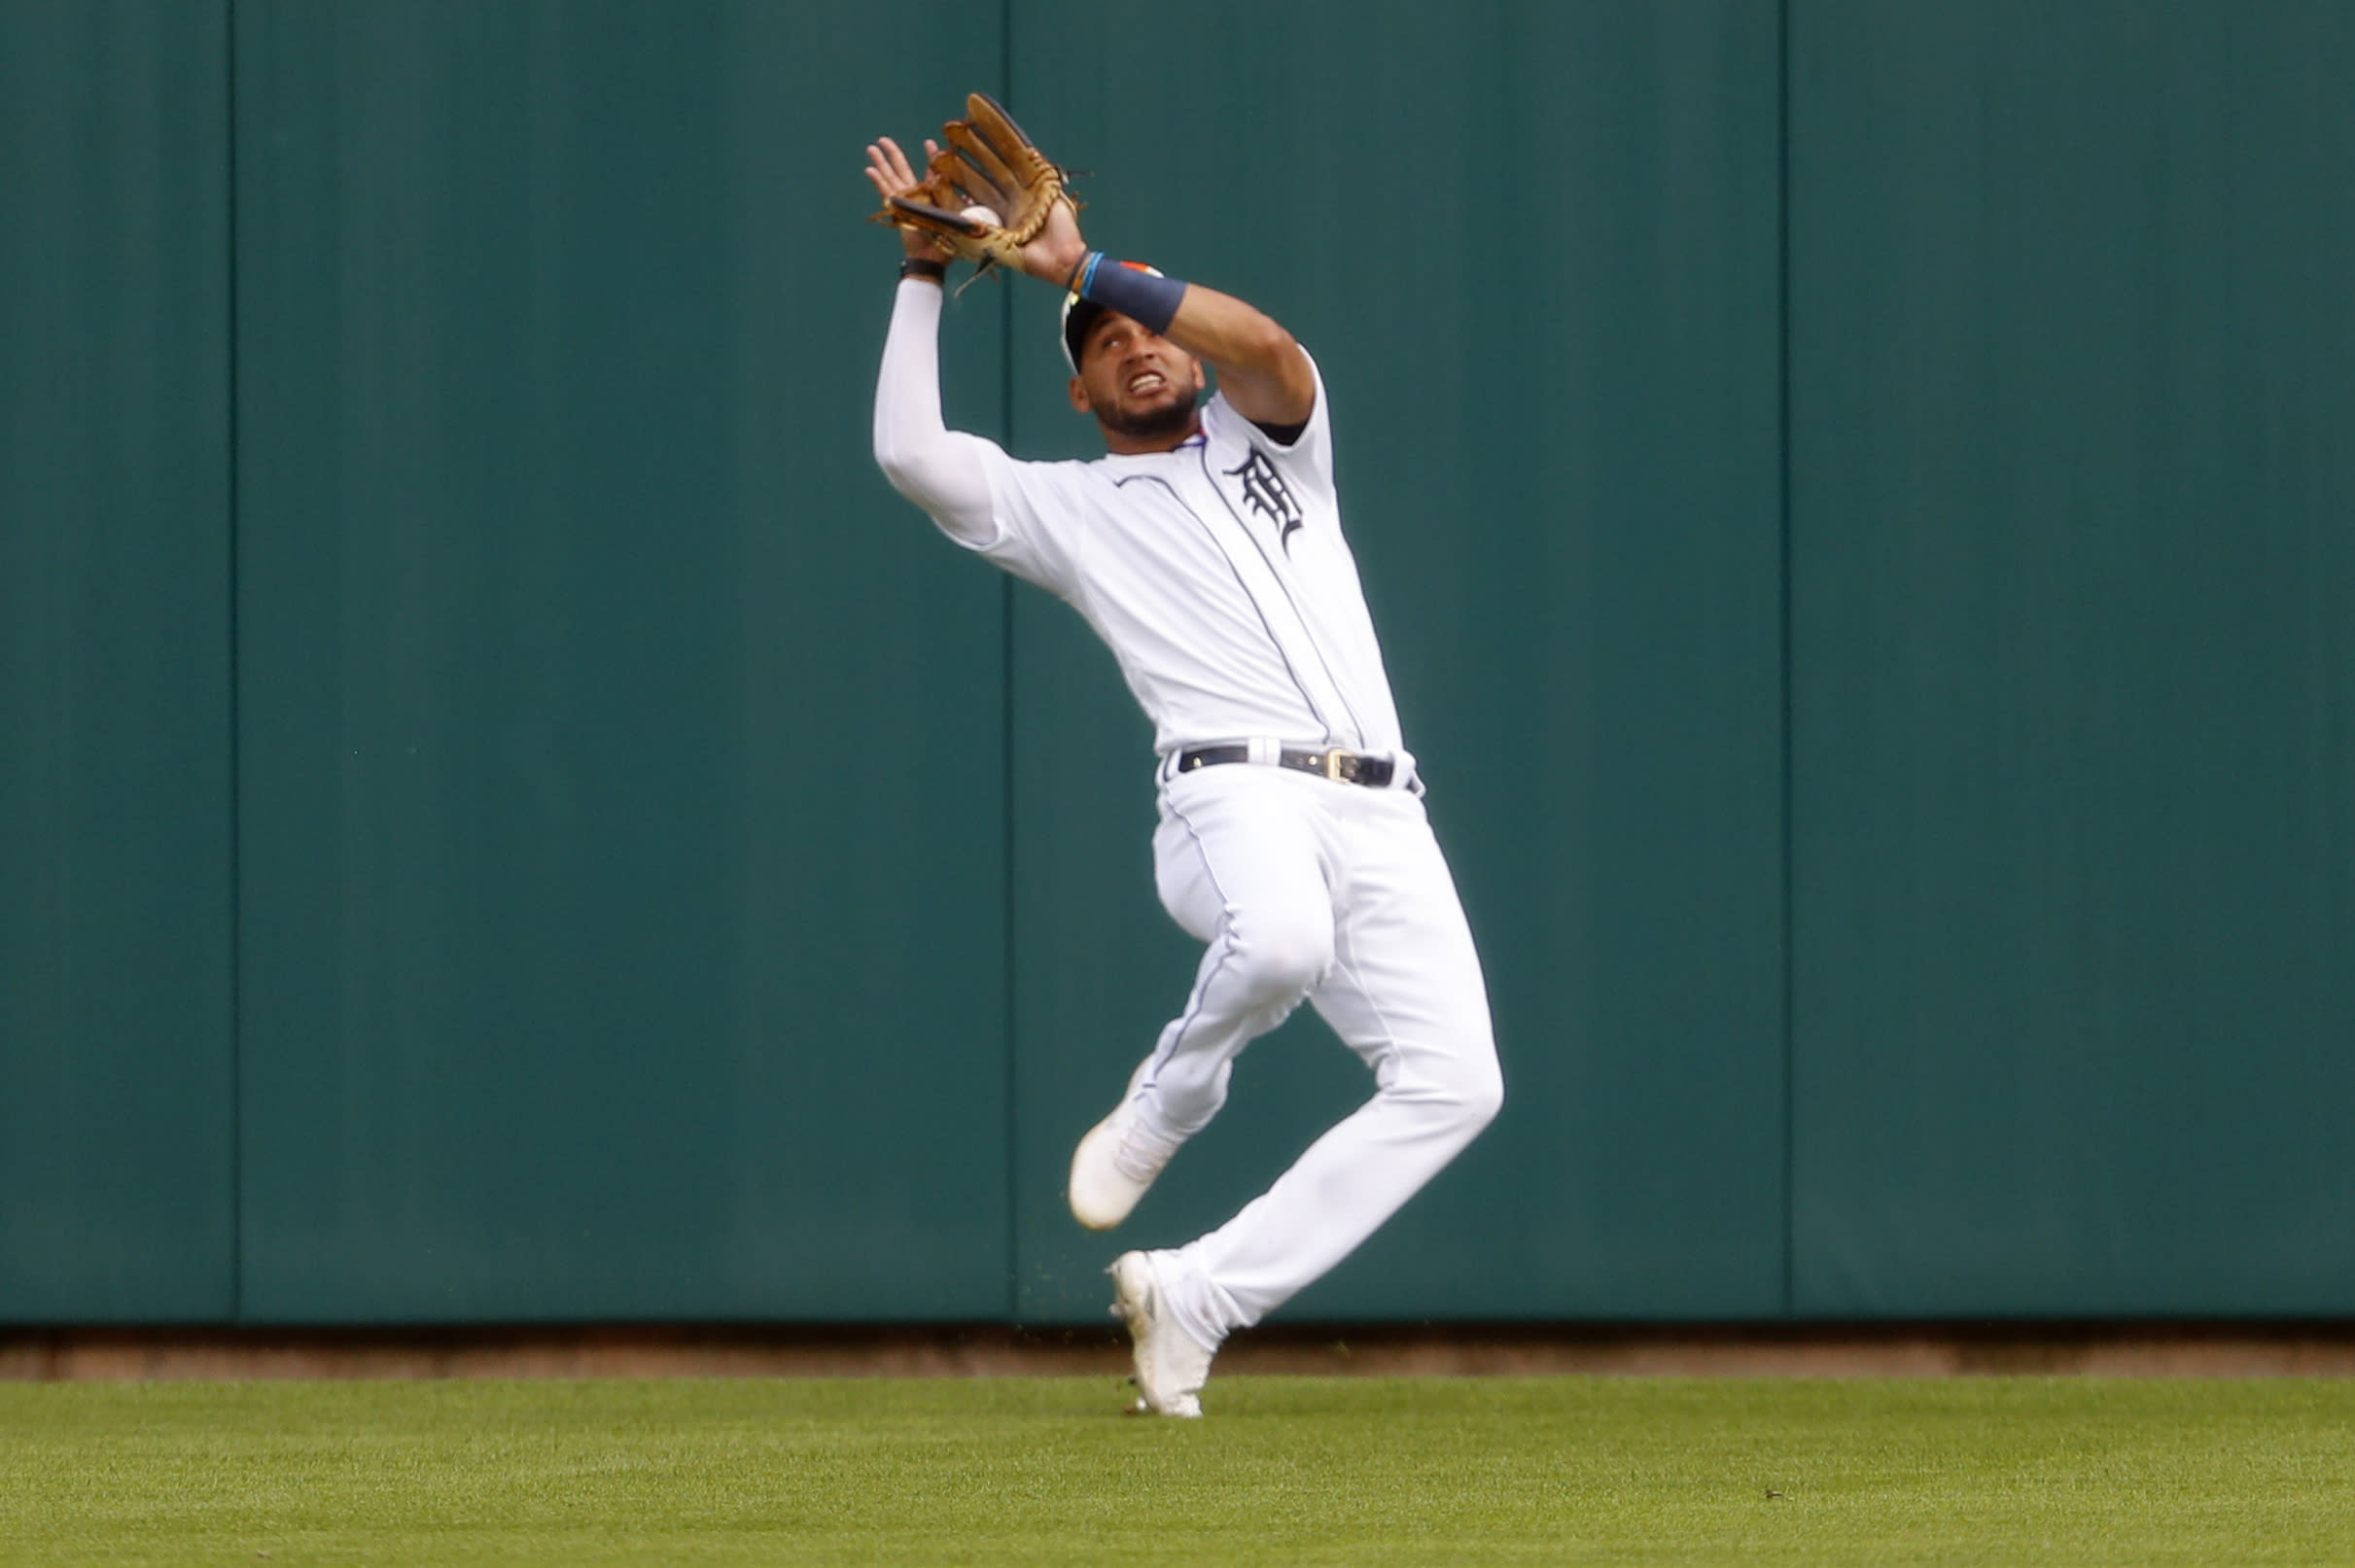 Detroit Tigers center fielder Victor Reyes catches a Cincinnati Reds' Nick Senzel (15) fly ball in the fifth inning of the second baseball game of a doubleheader in Detroit, Sunday, Aug. 2, 2020. (AP Photo/Paul Sancya)